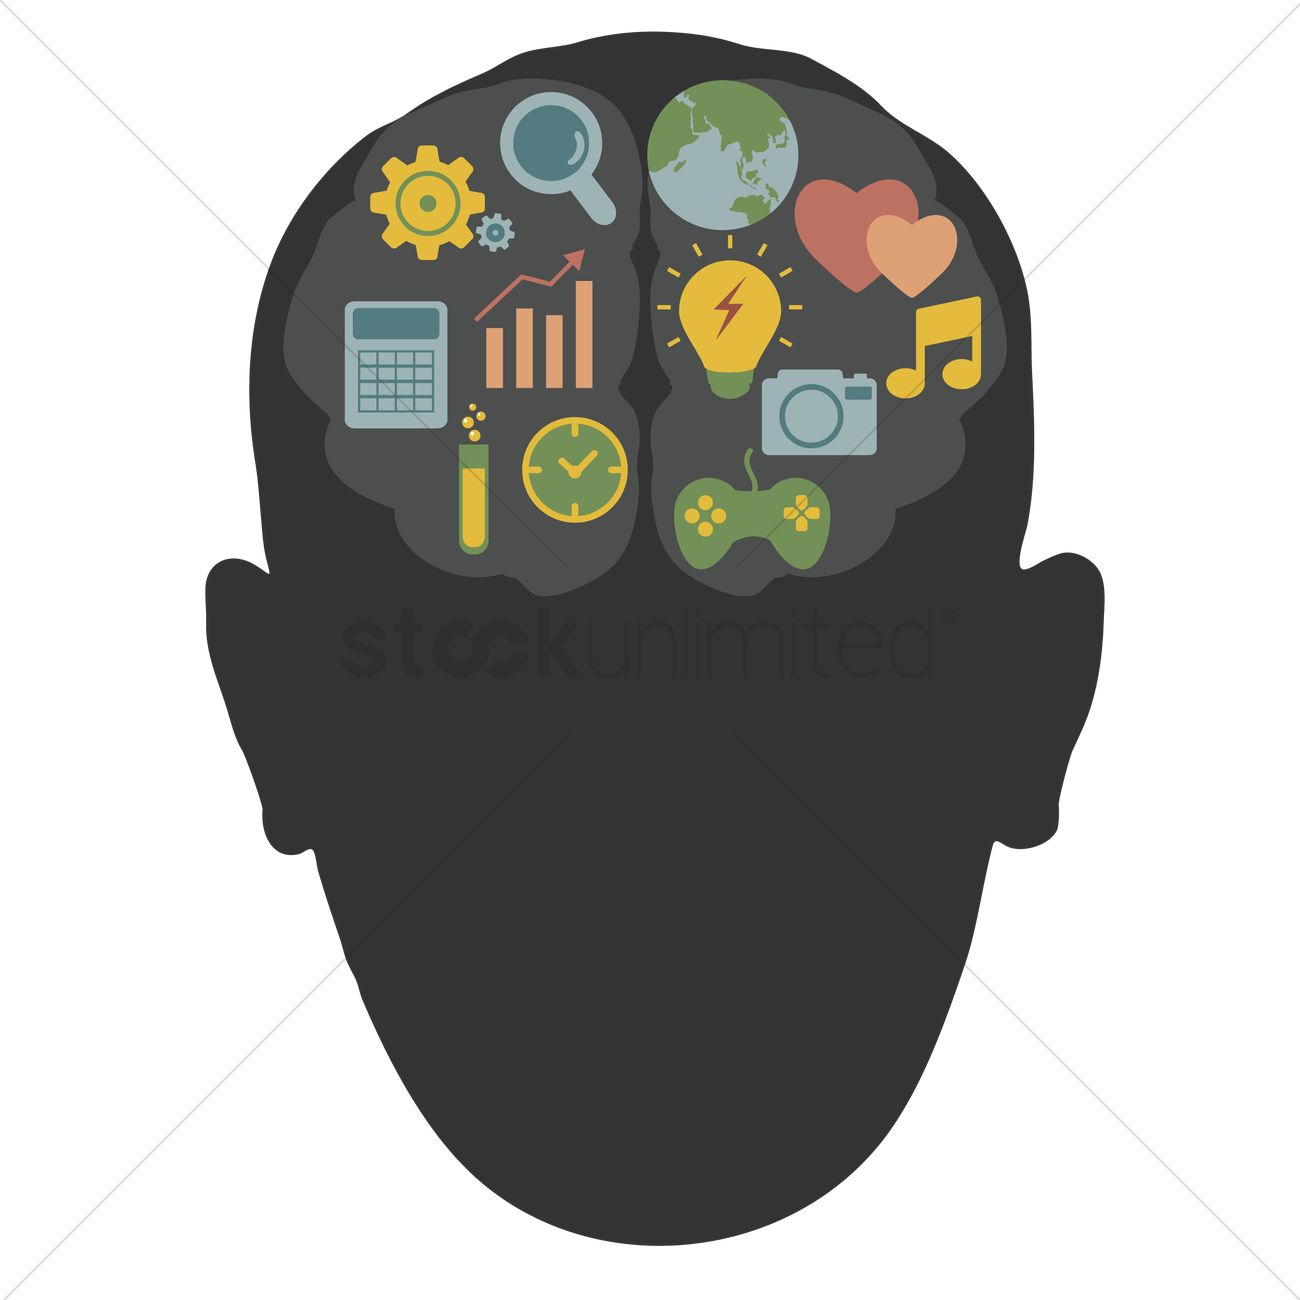 Human Head Silhouette With Brain Art Vector Image